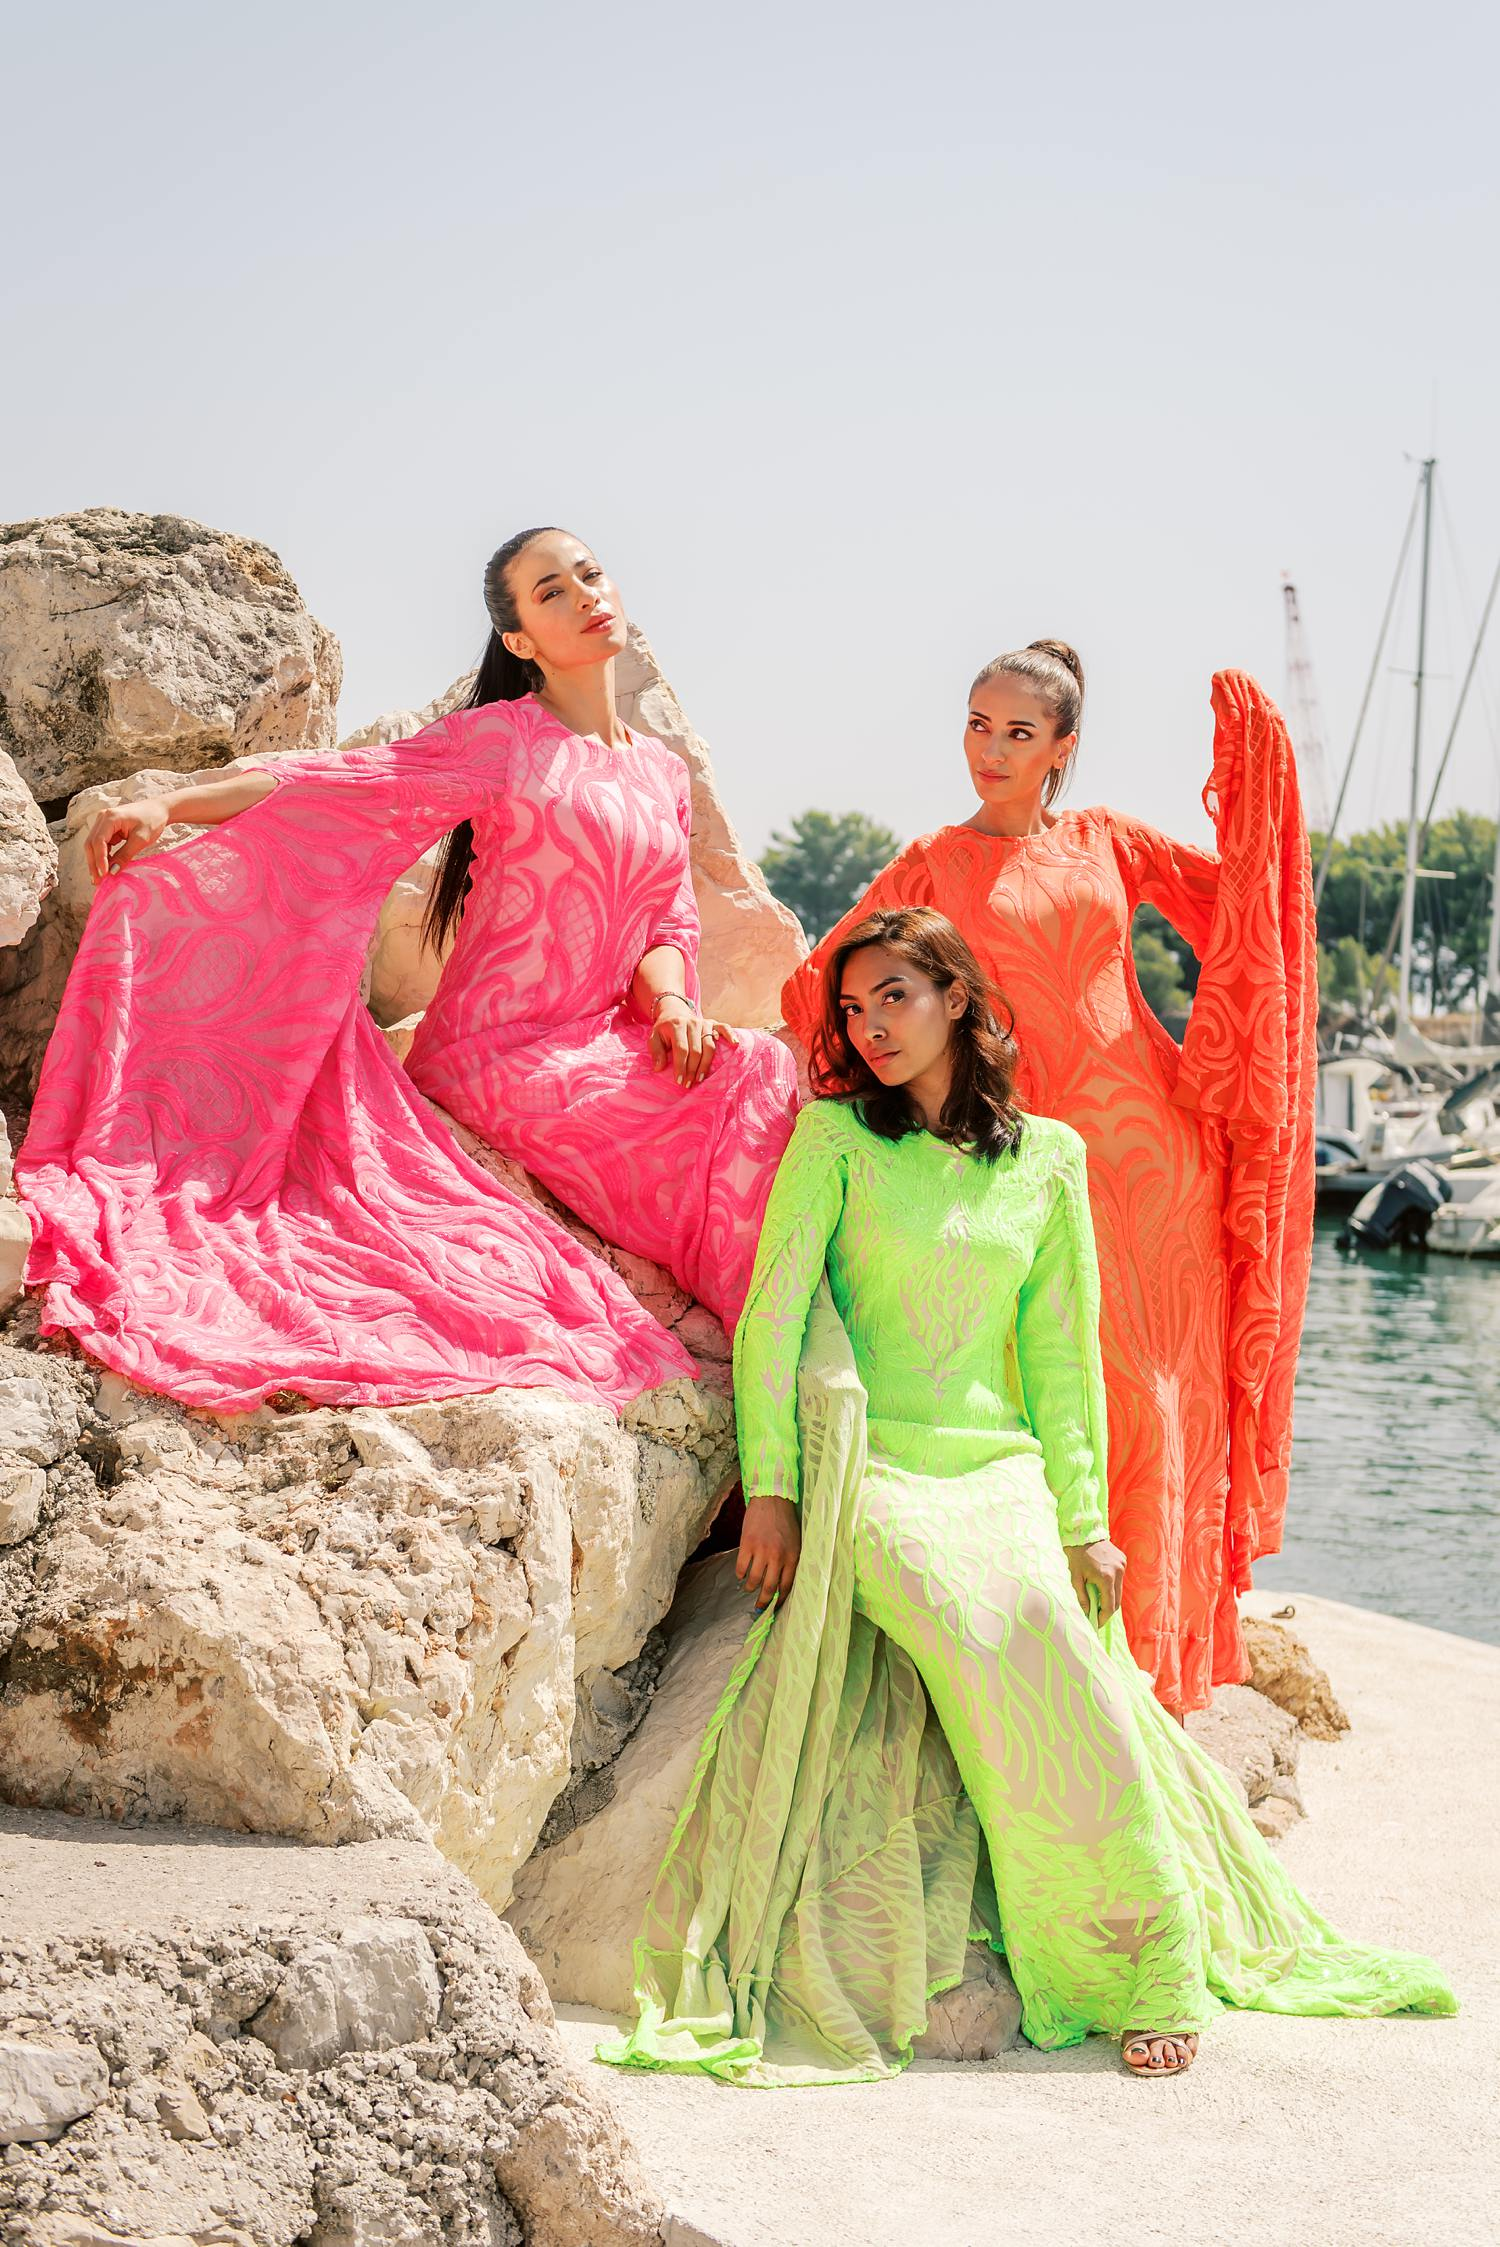 fashion advertorial shot of three models in haute couture custom beaded gowns sitting on the rocks at a harbor in Marseille, France